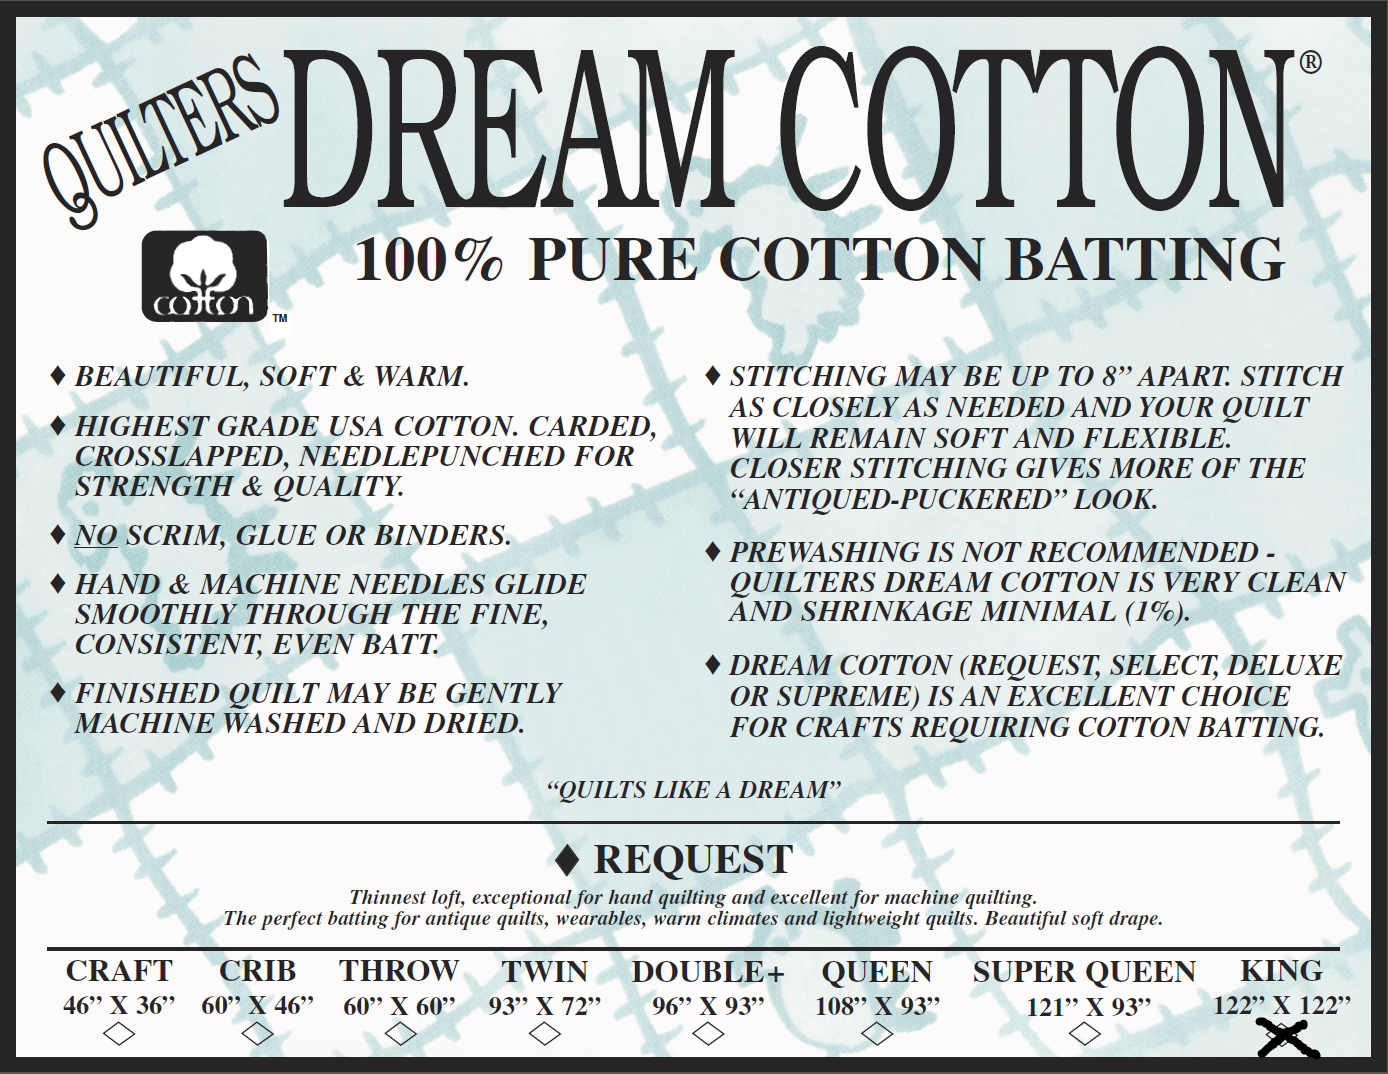 Request King 122x122 Quilters Dream Cotton